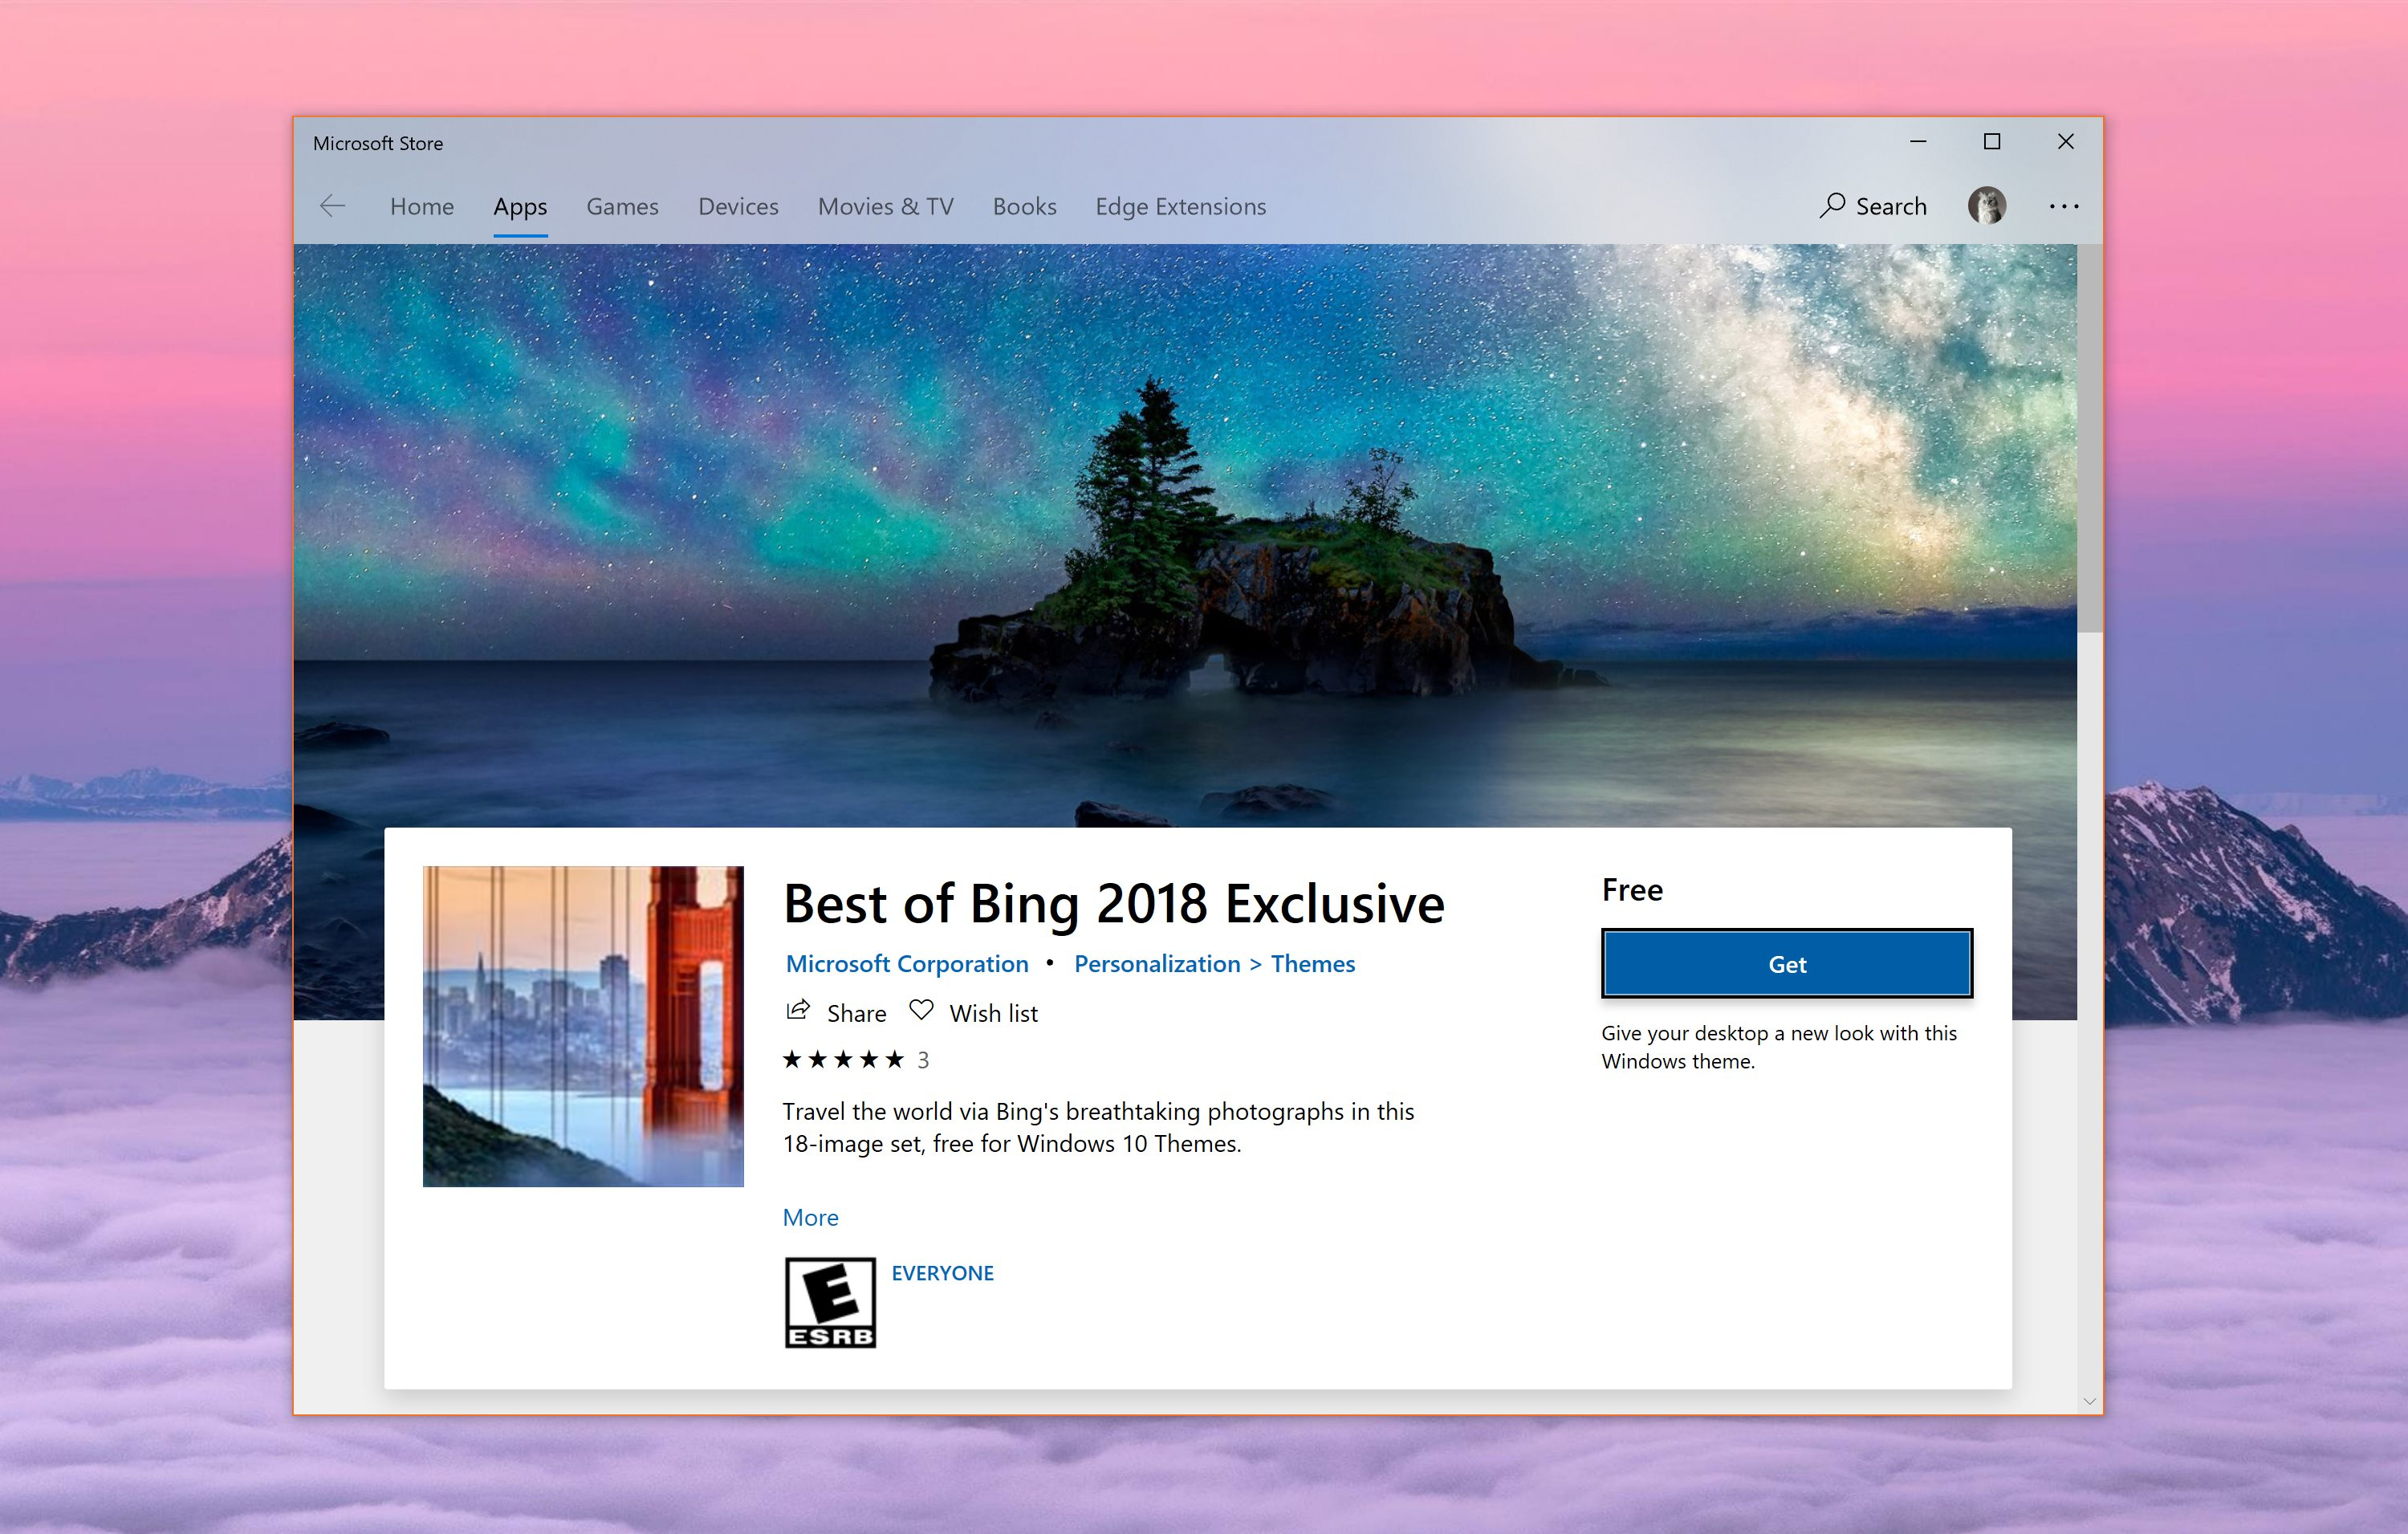 The theme is available free of charge for Windows 10 users